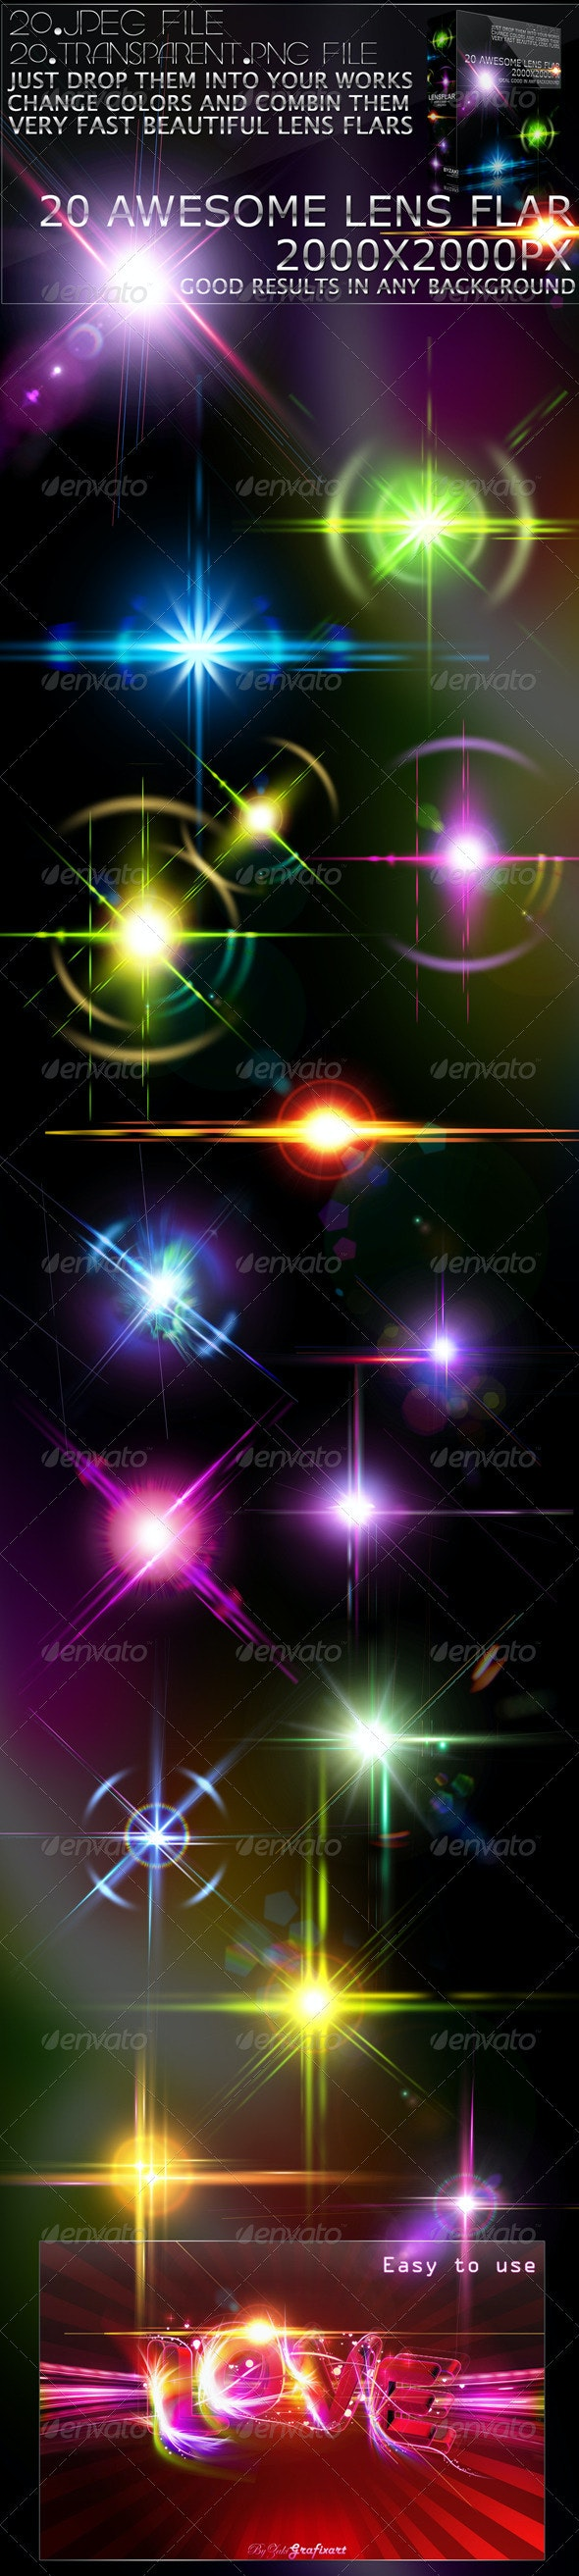 20 Lens Flar Lights Effects - Abstract Backgrounds